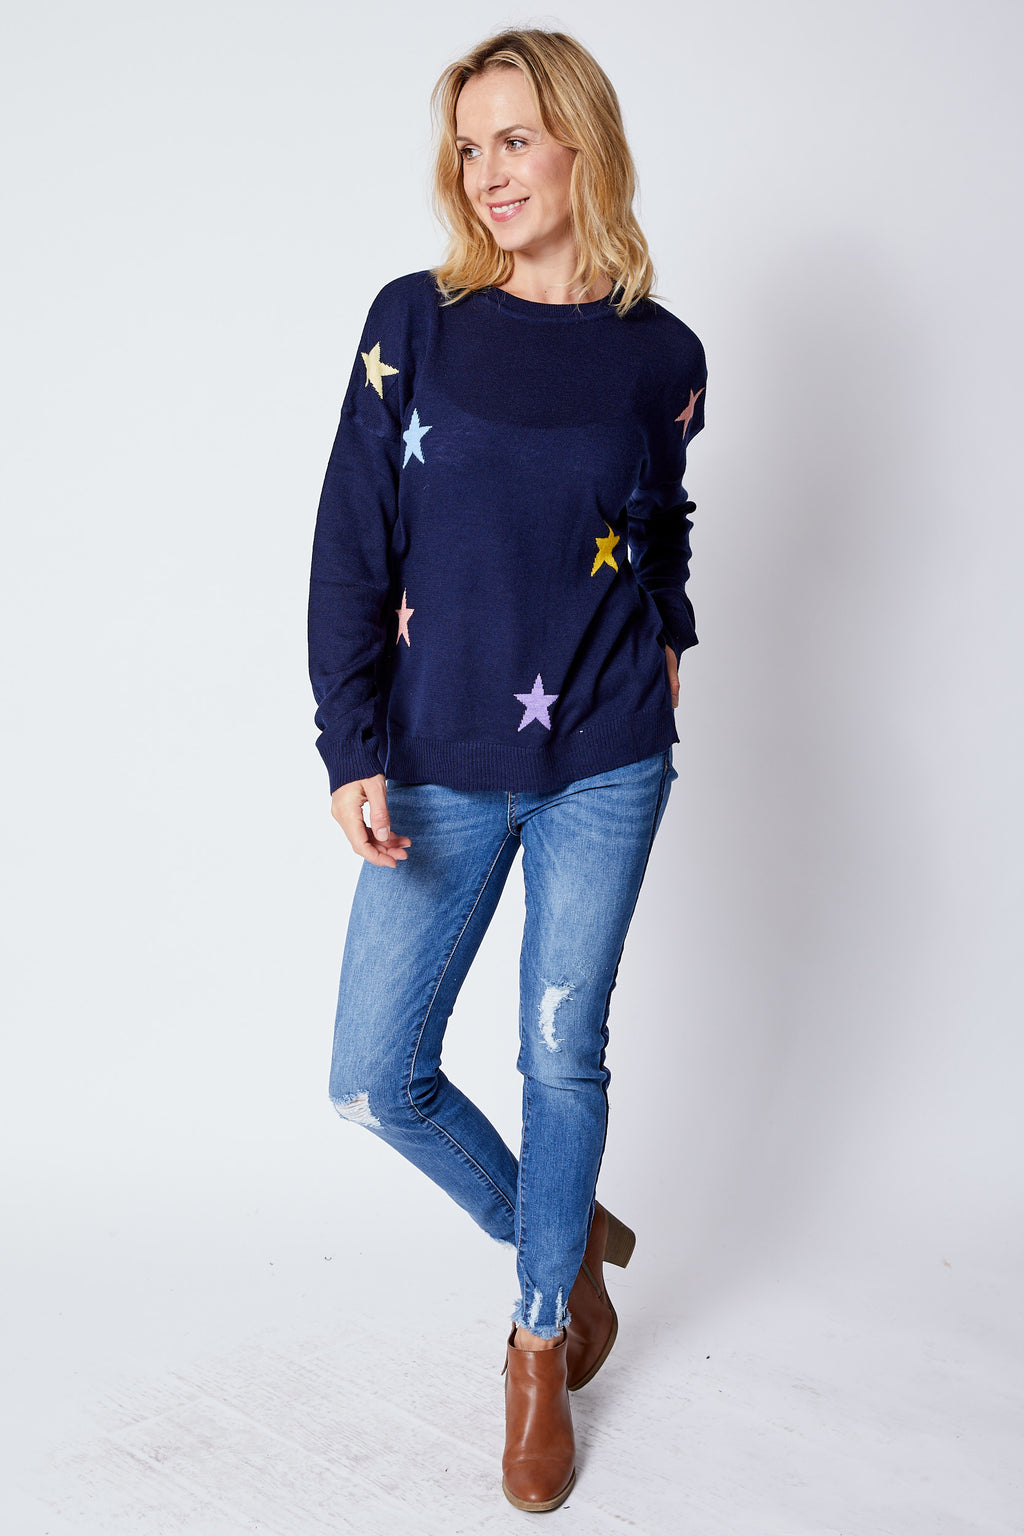 Navy Multi Color Star Sweater - Jacqueline B Clothing